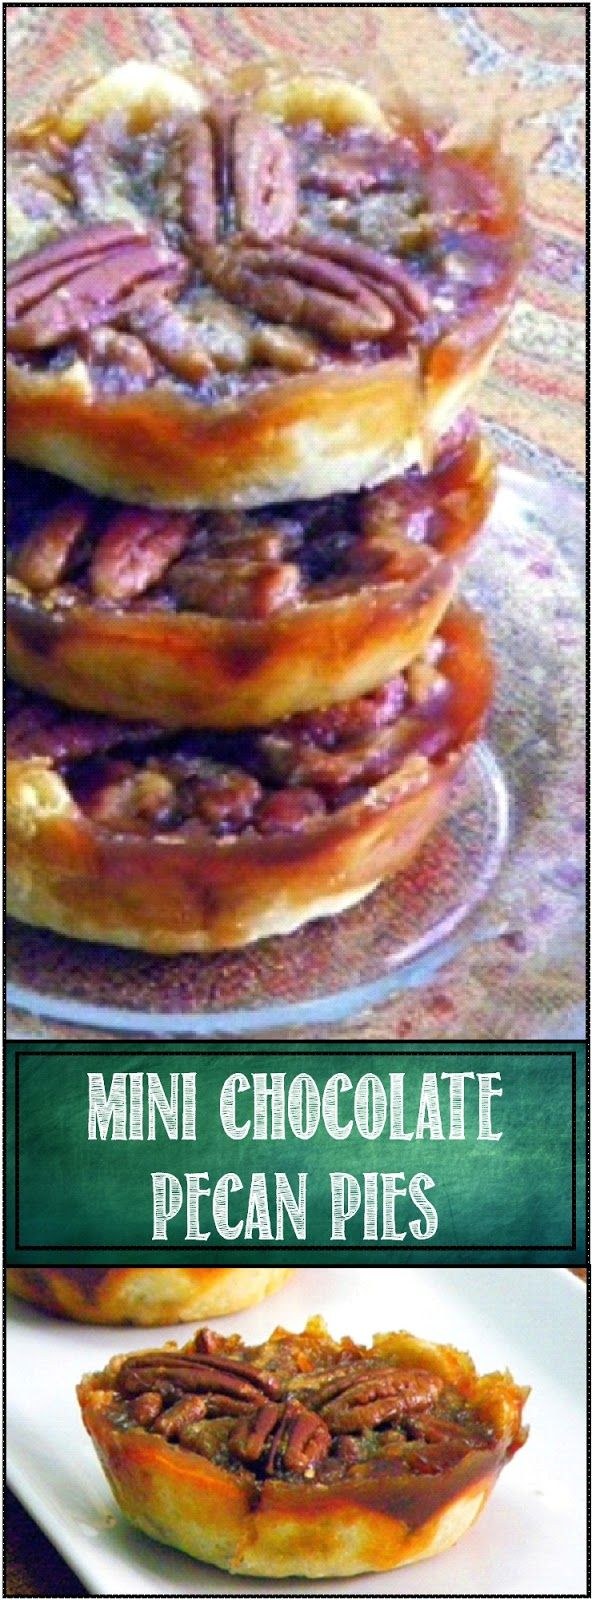 Mini Chocolate Pecan Pies, thanks to Oh NUTS! A wonderful little bite sized version of the Southern classic (ZINGED up with CHOCOLATE!). So easy and delicious, would make a great addition to any New Orleans themed Super Bowl Party!